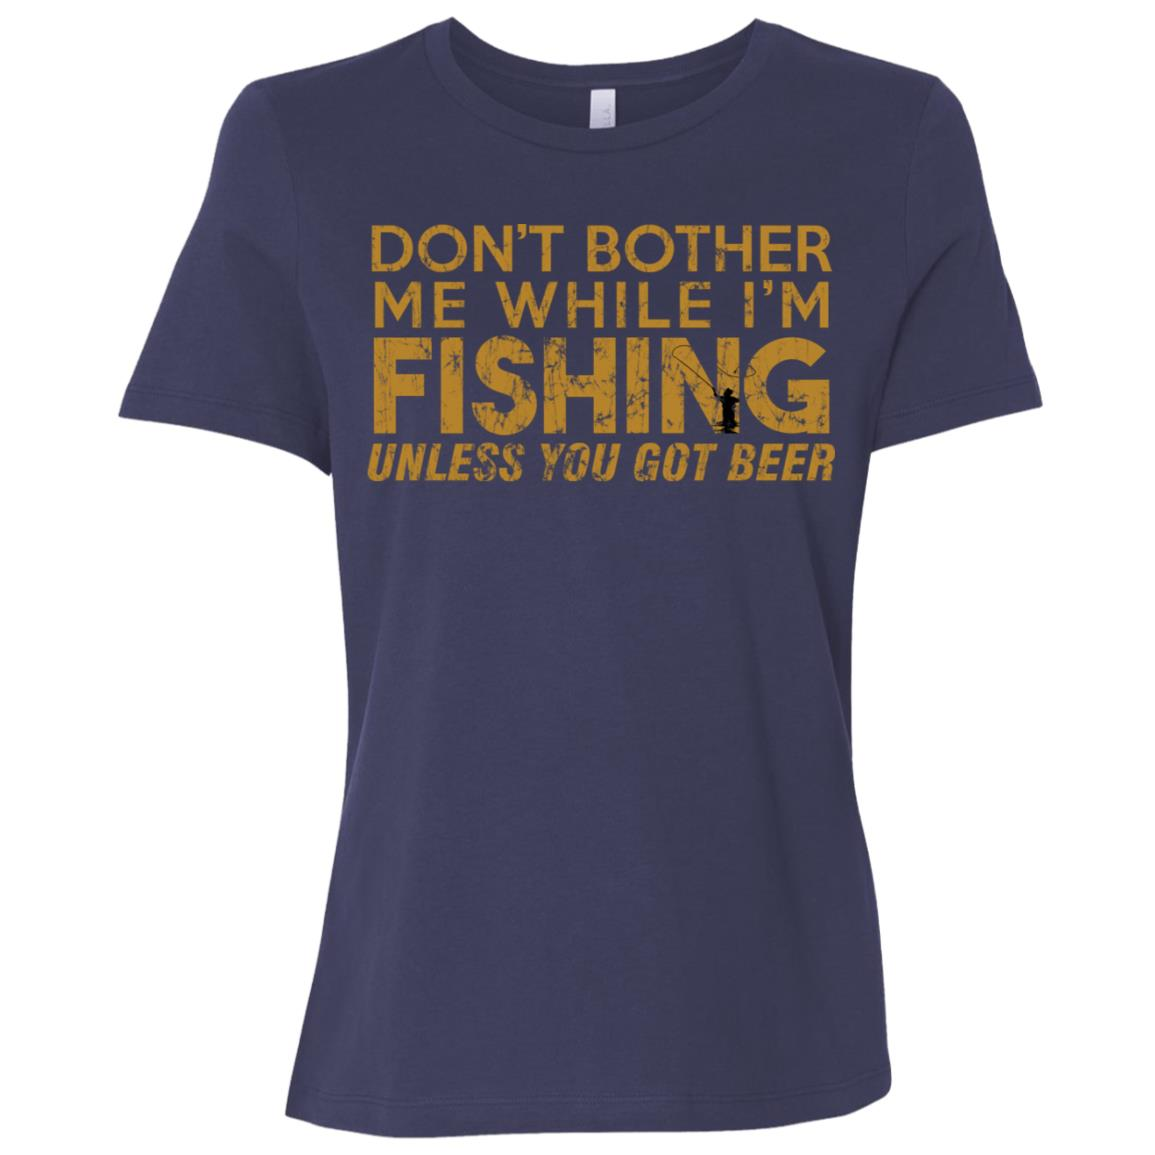 Fishing Funny Sarcasm Quotes Joke Hobbies Humor-2 Women Short Sleeve T-Shirt